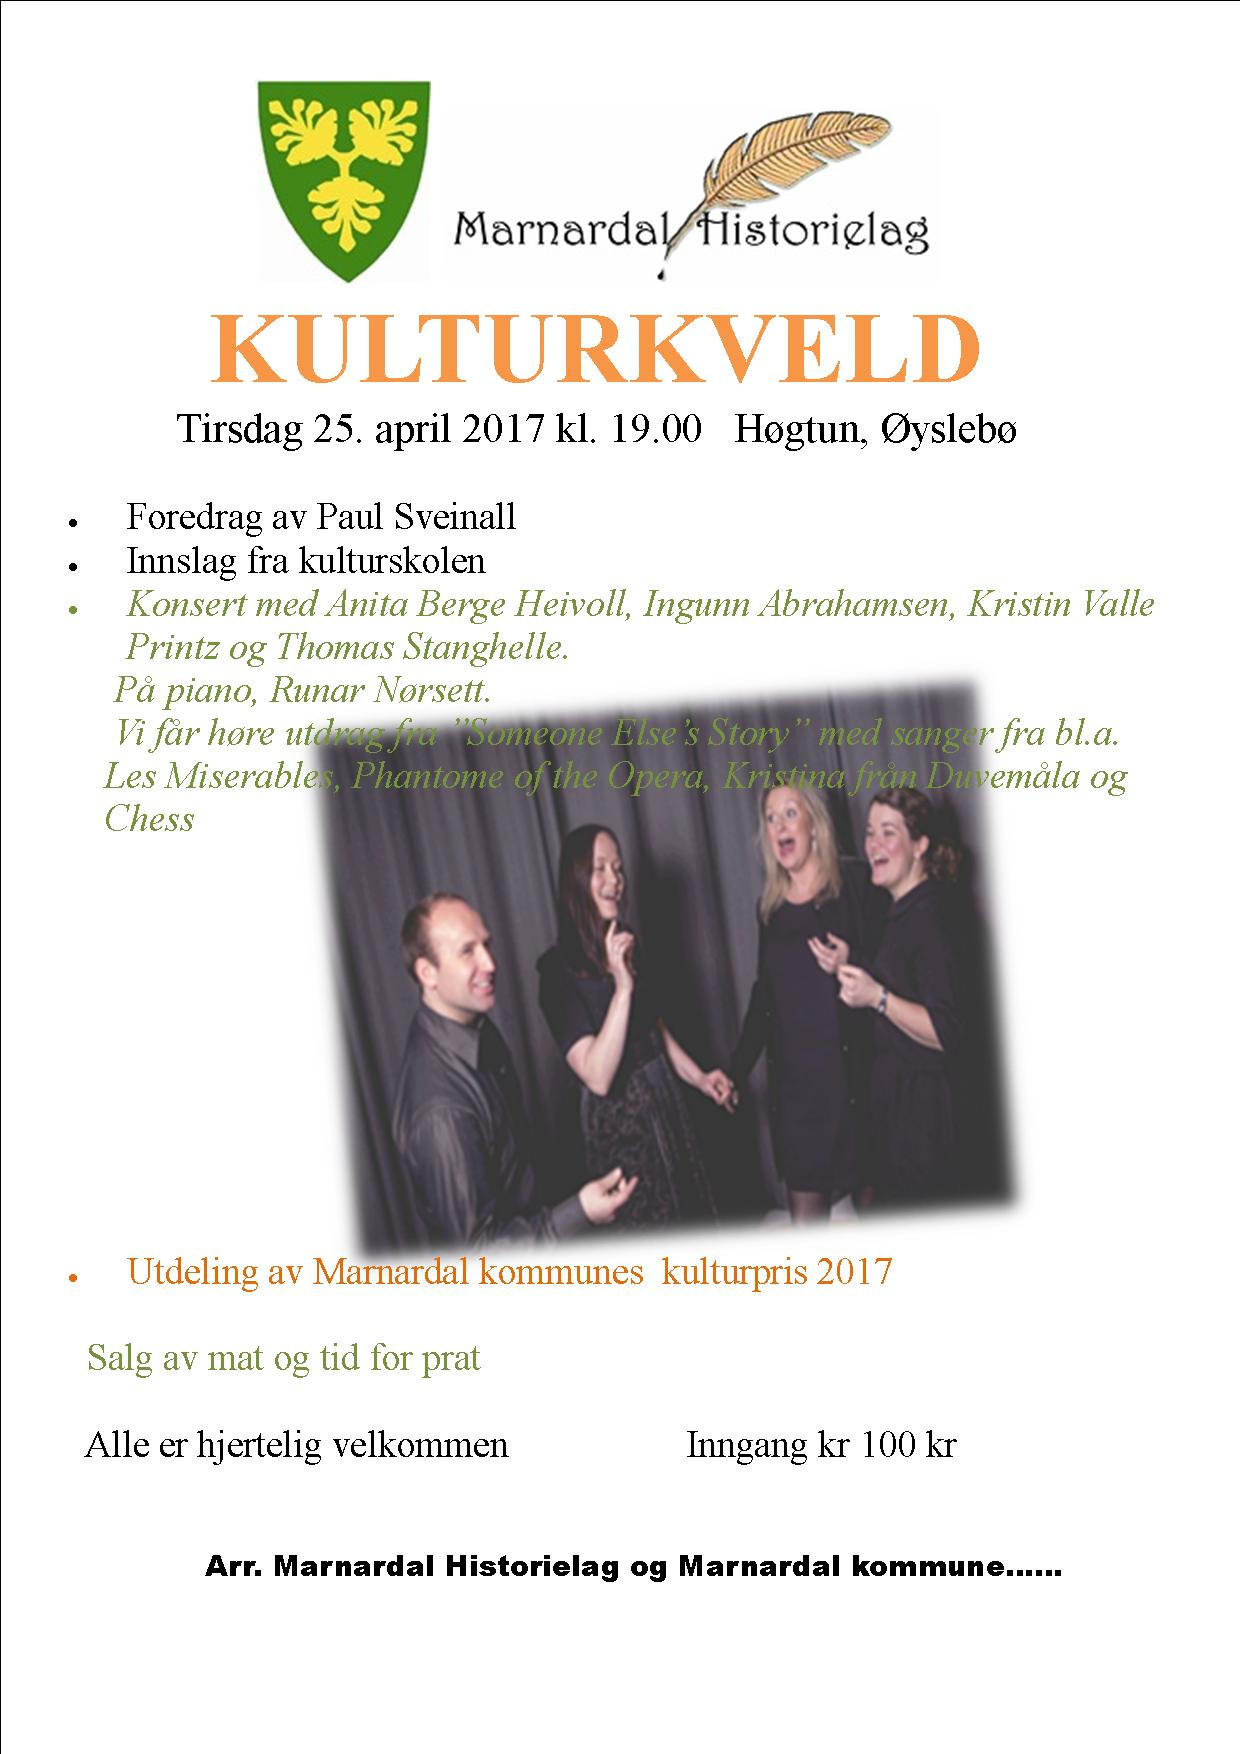 Plakat med program for Kulturkvelden i Marnardal 2017